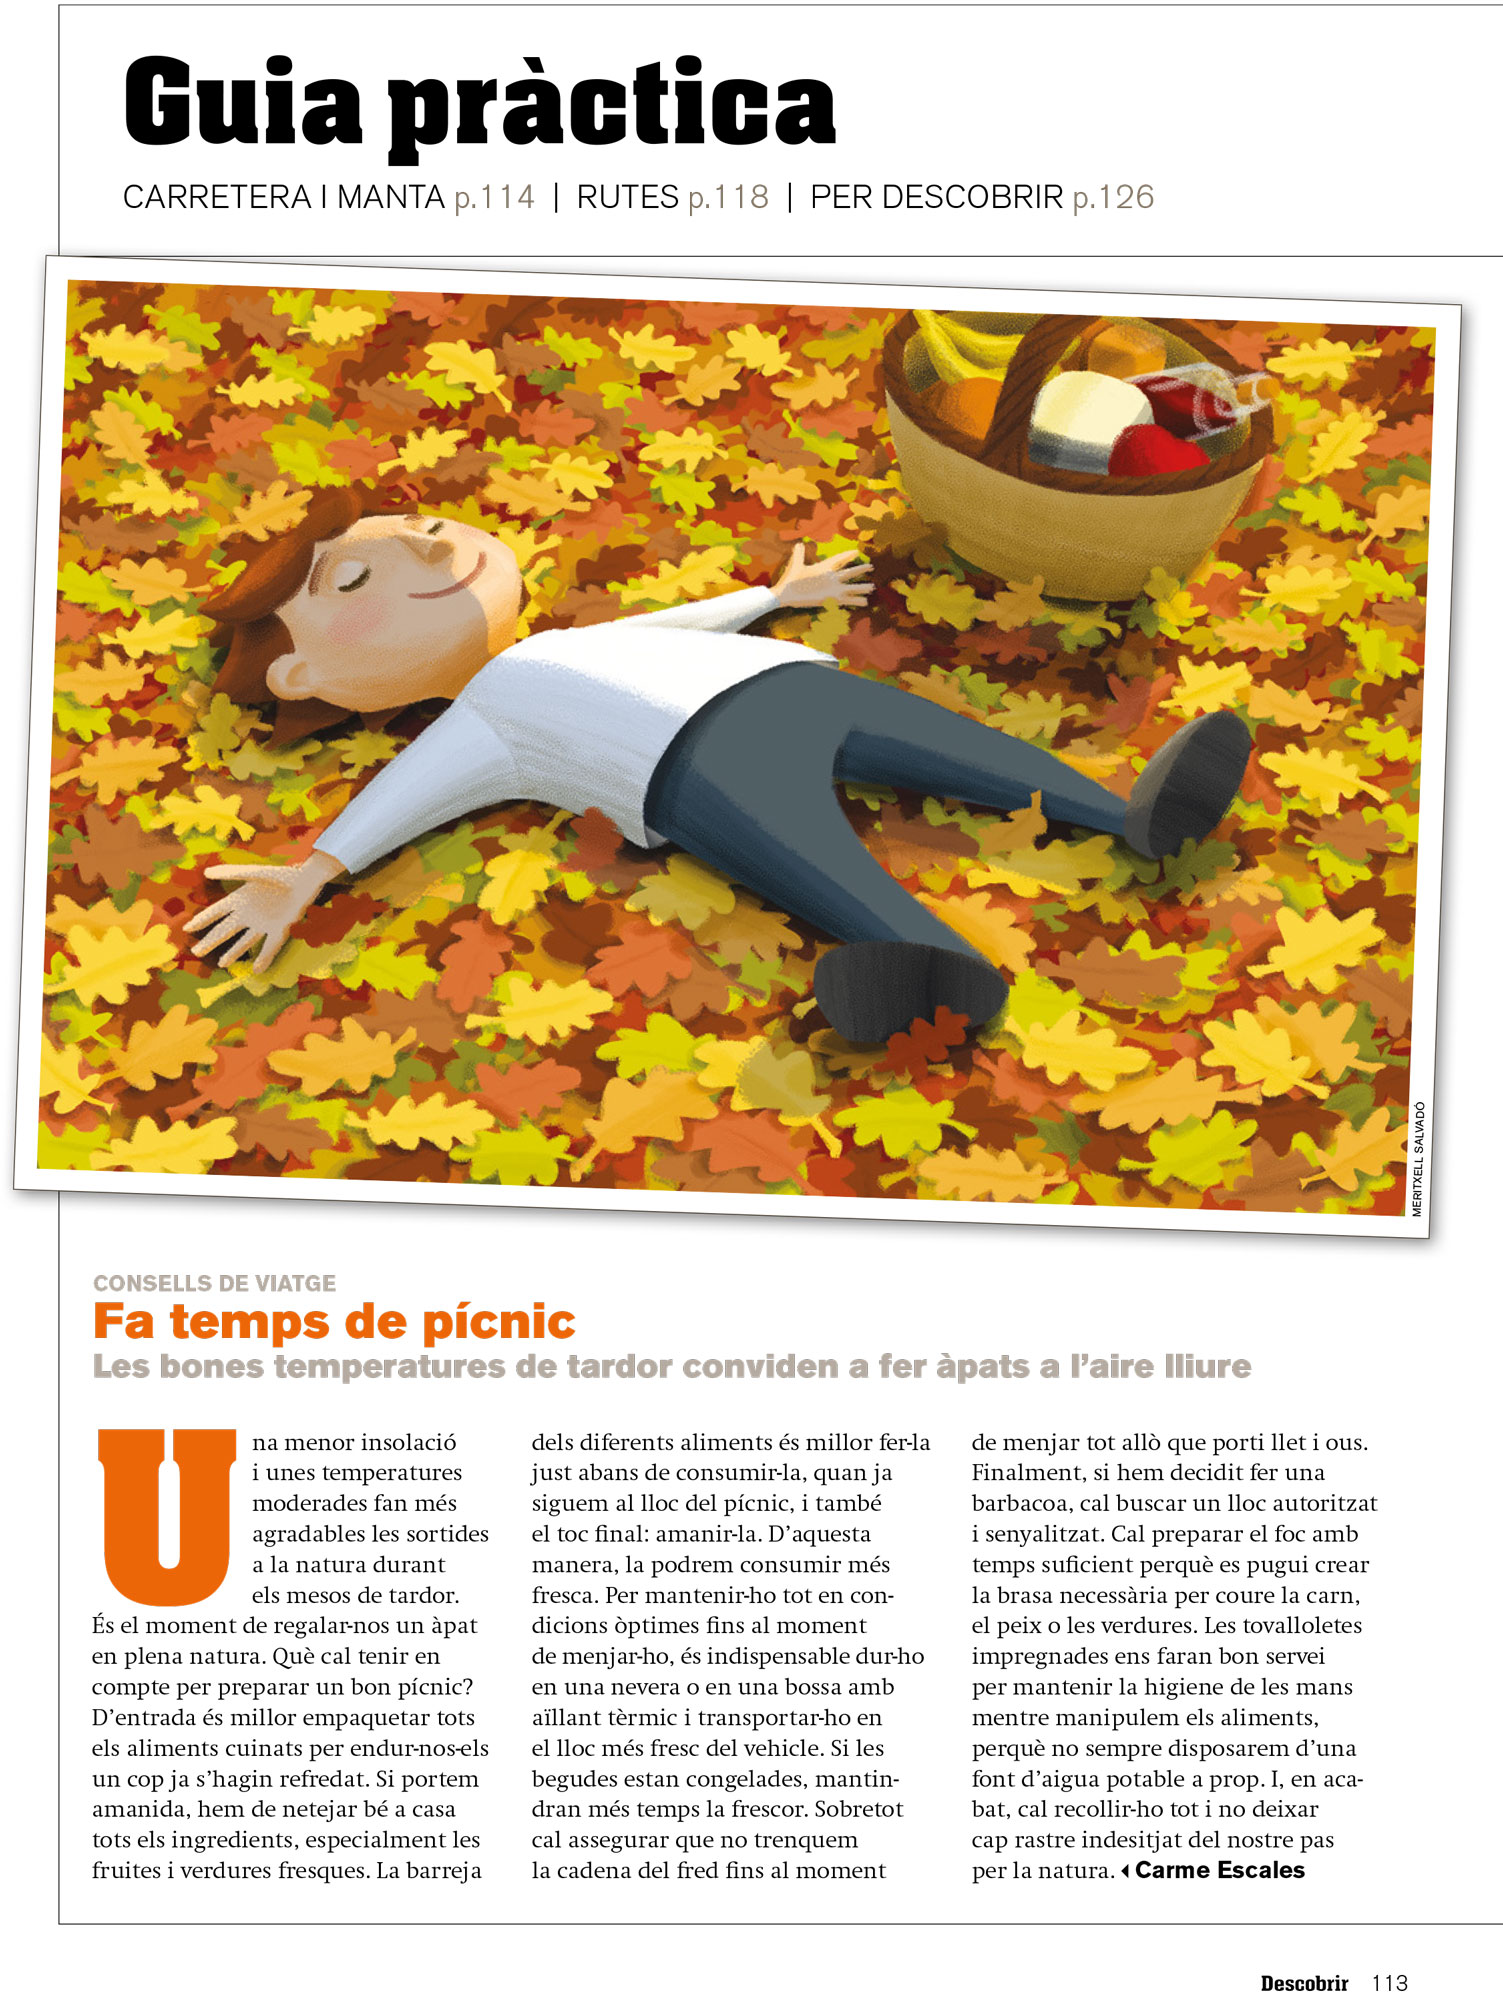 An autumnal article